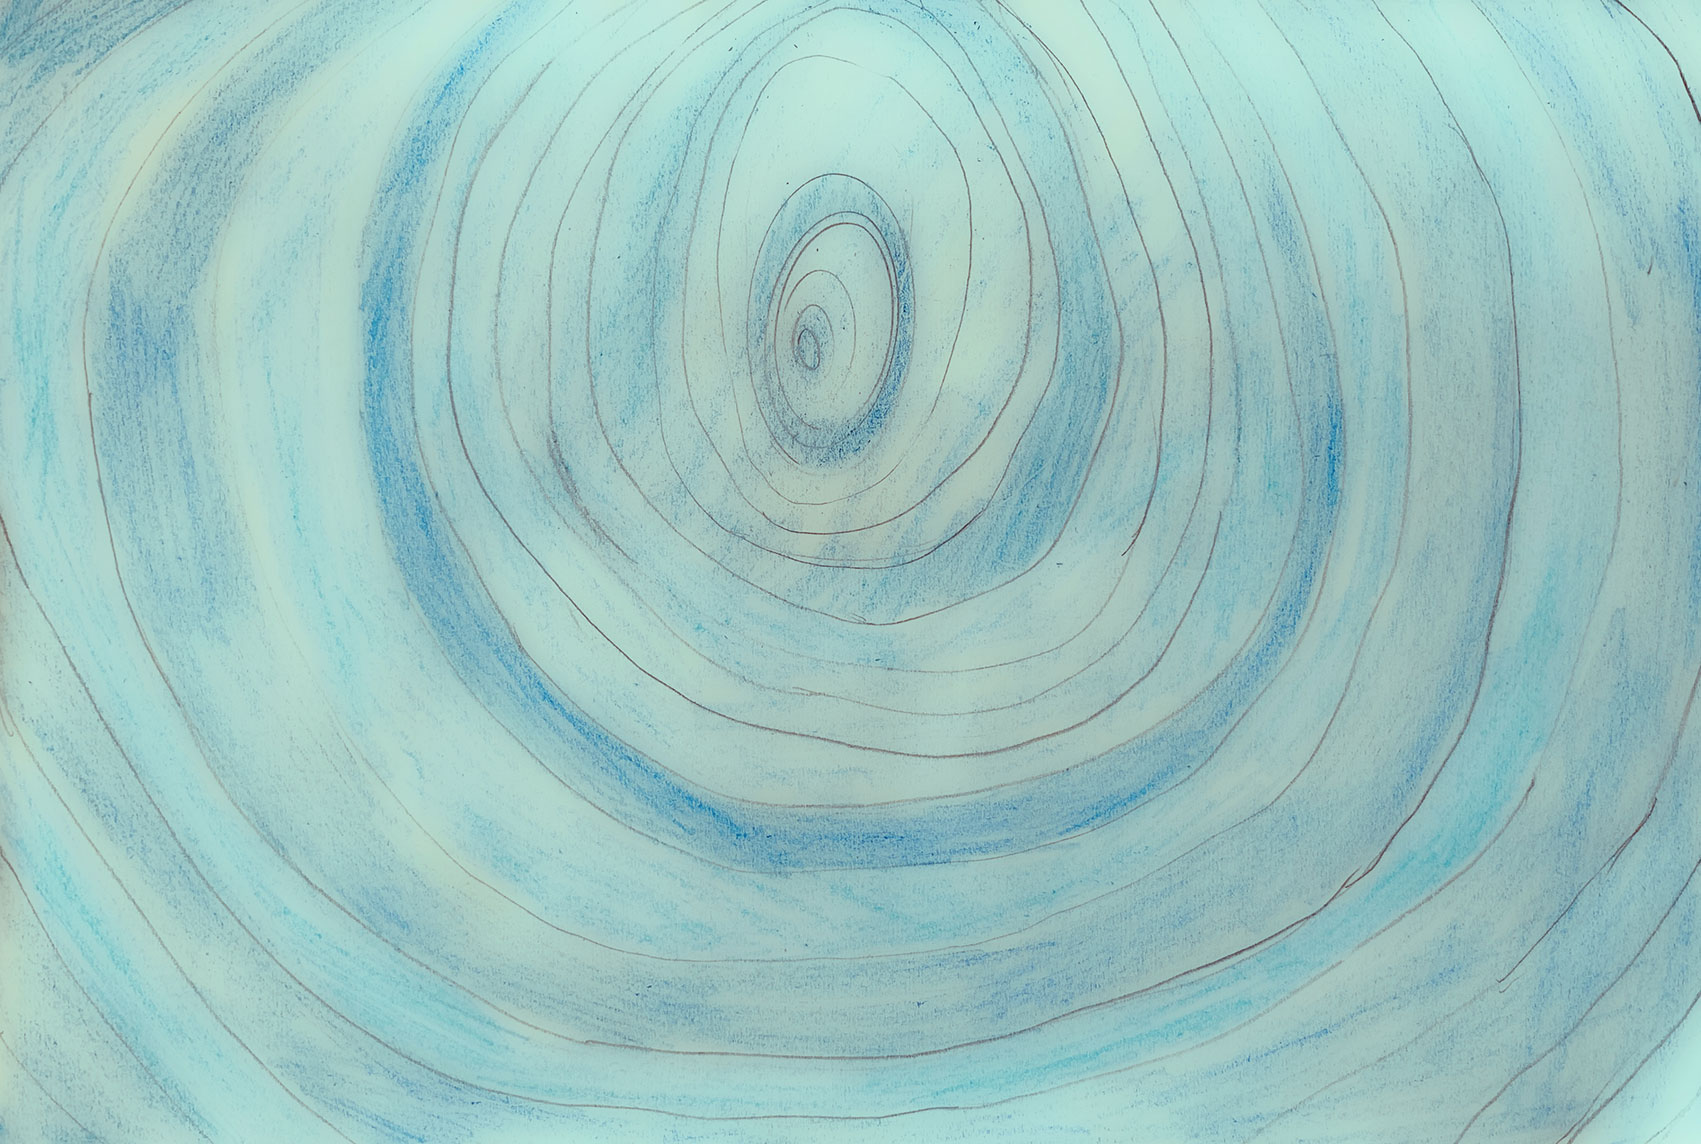 Child's coloured pencil drawing of concentric circles